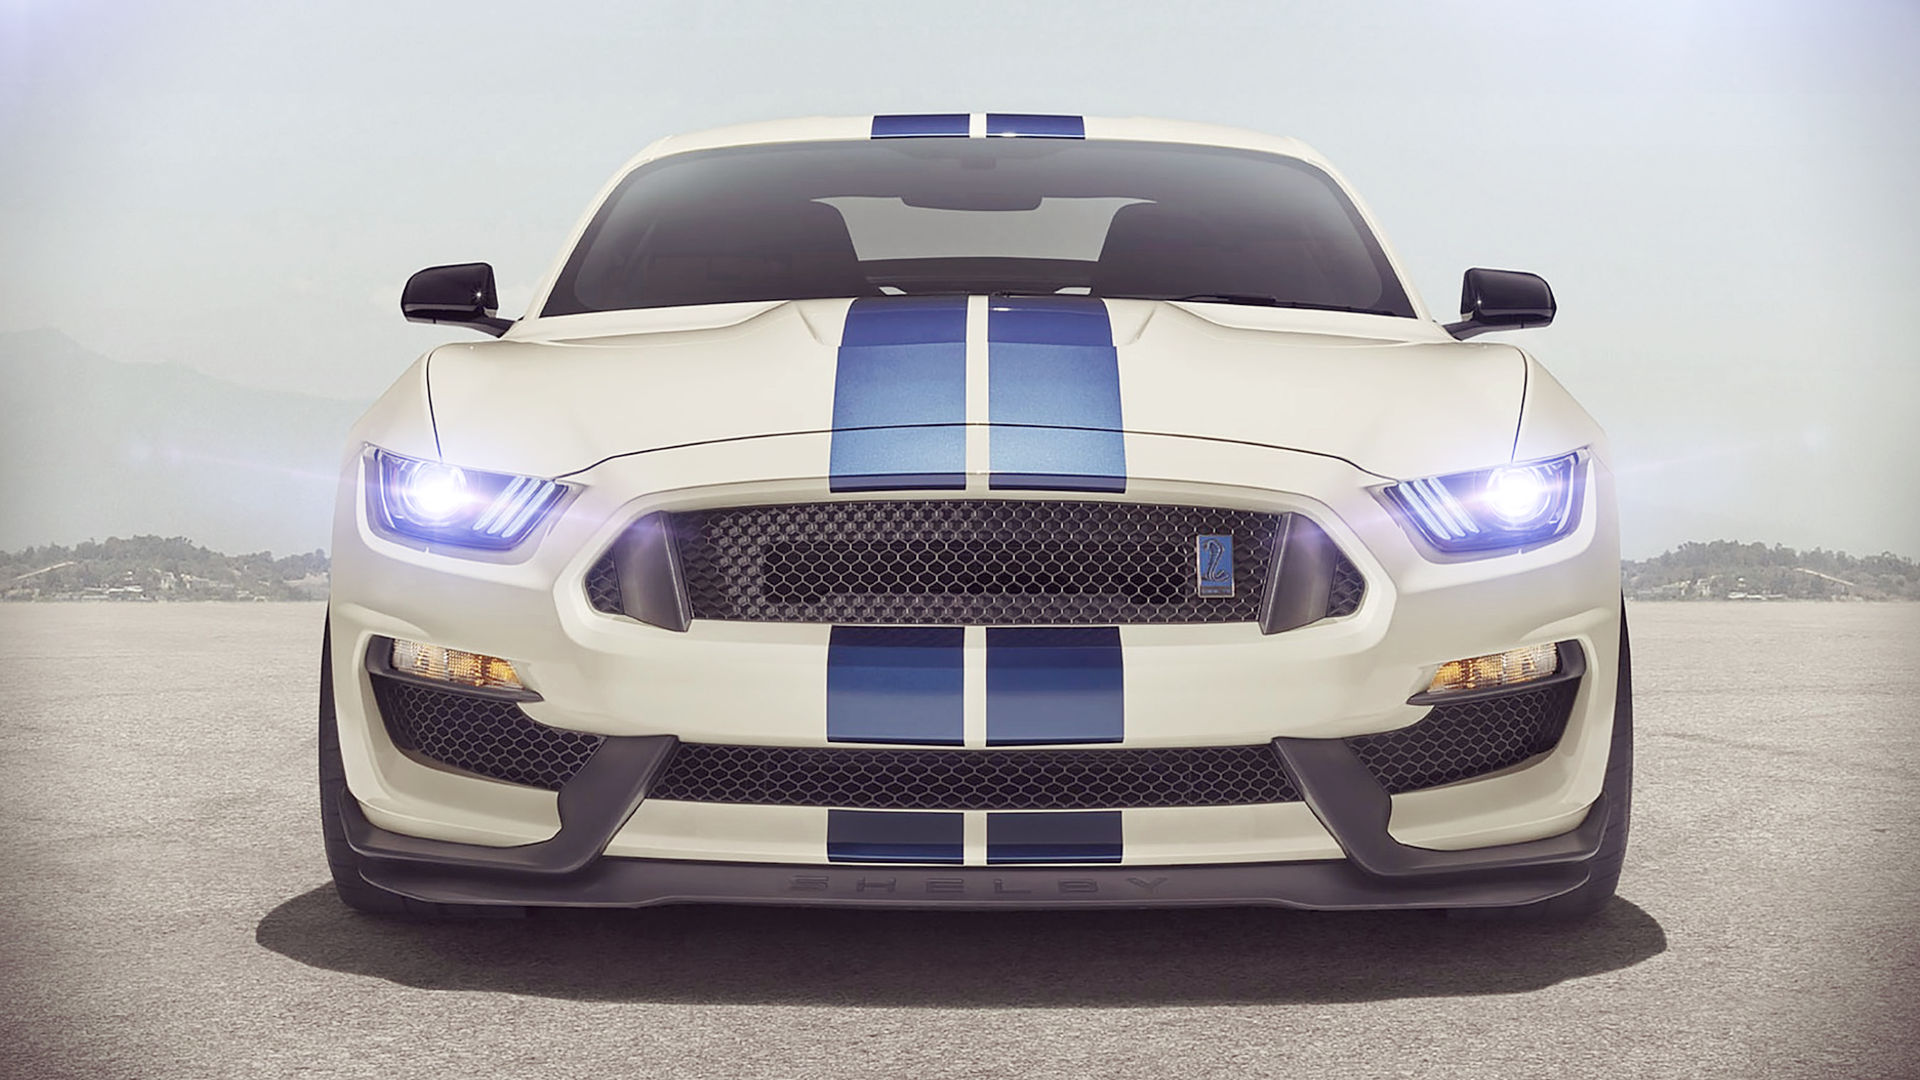 Ford Mustang Shelby GT350 Heritage Edition 2020 Wallpaper Hd